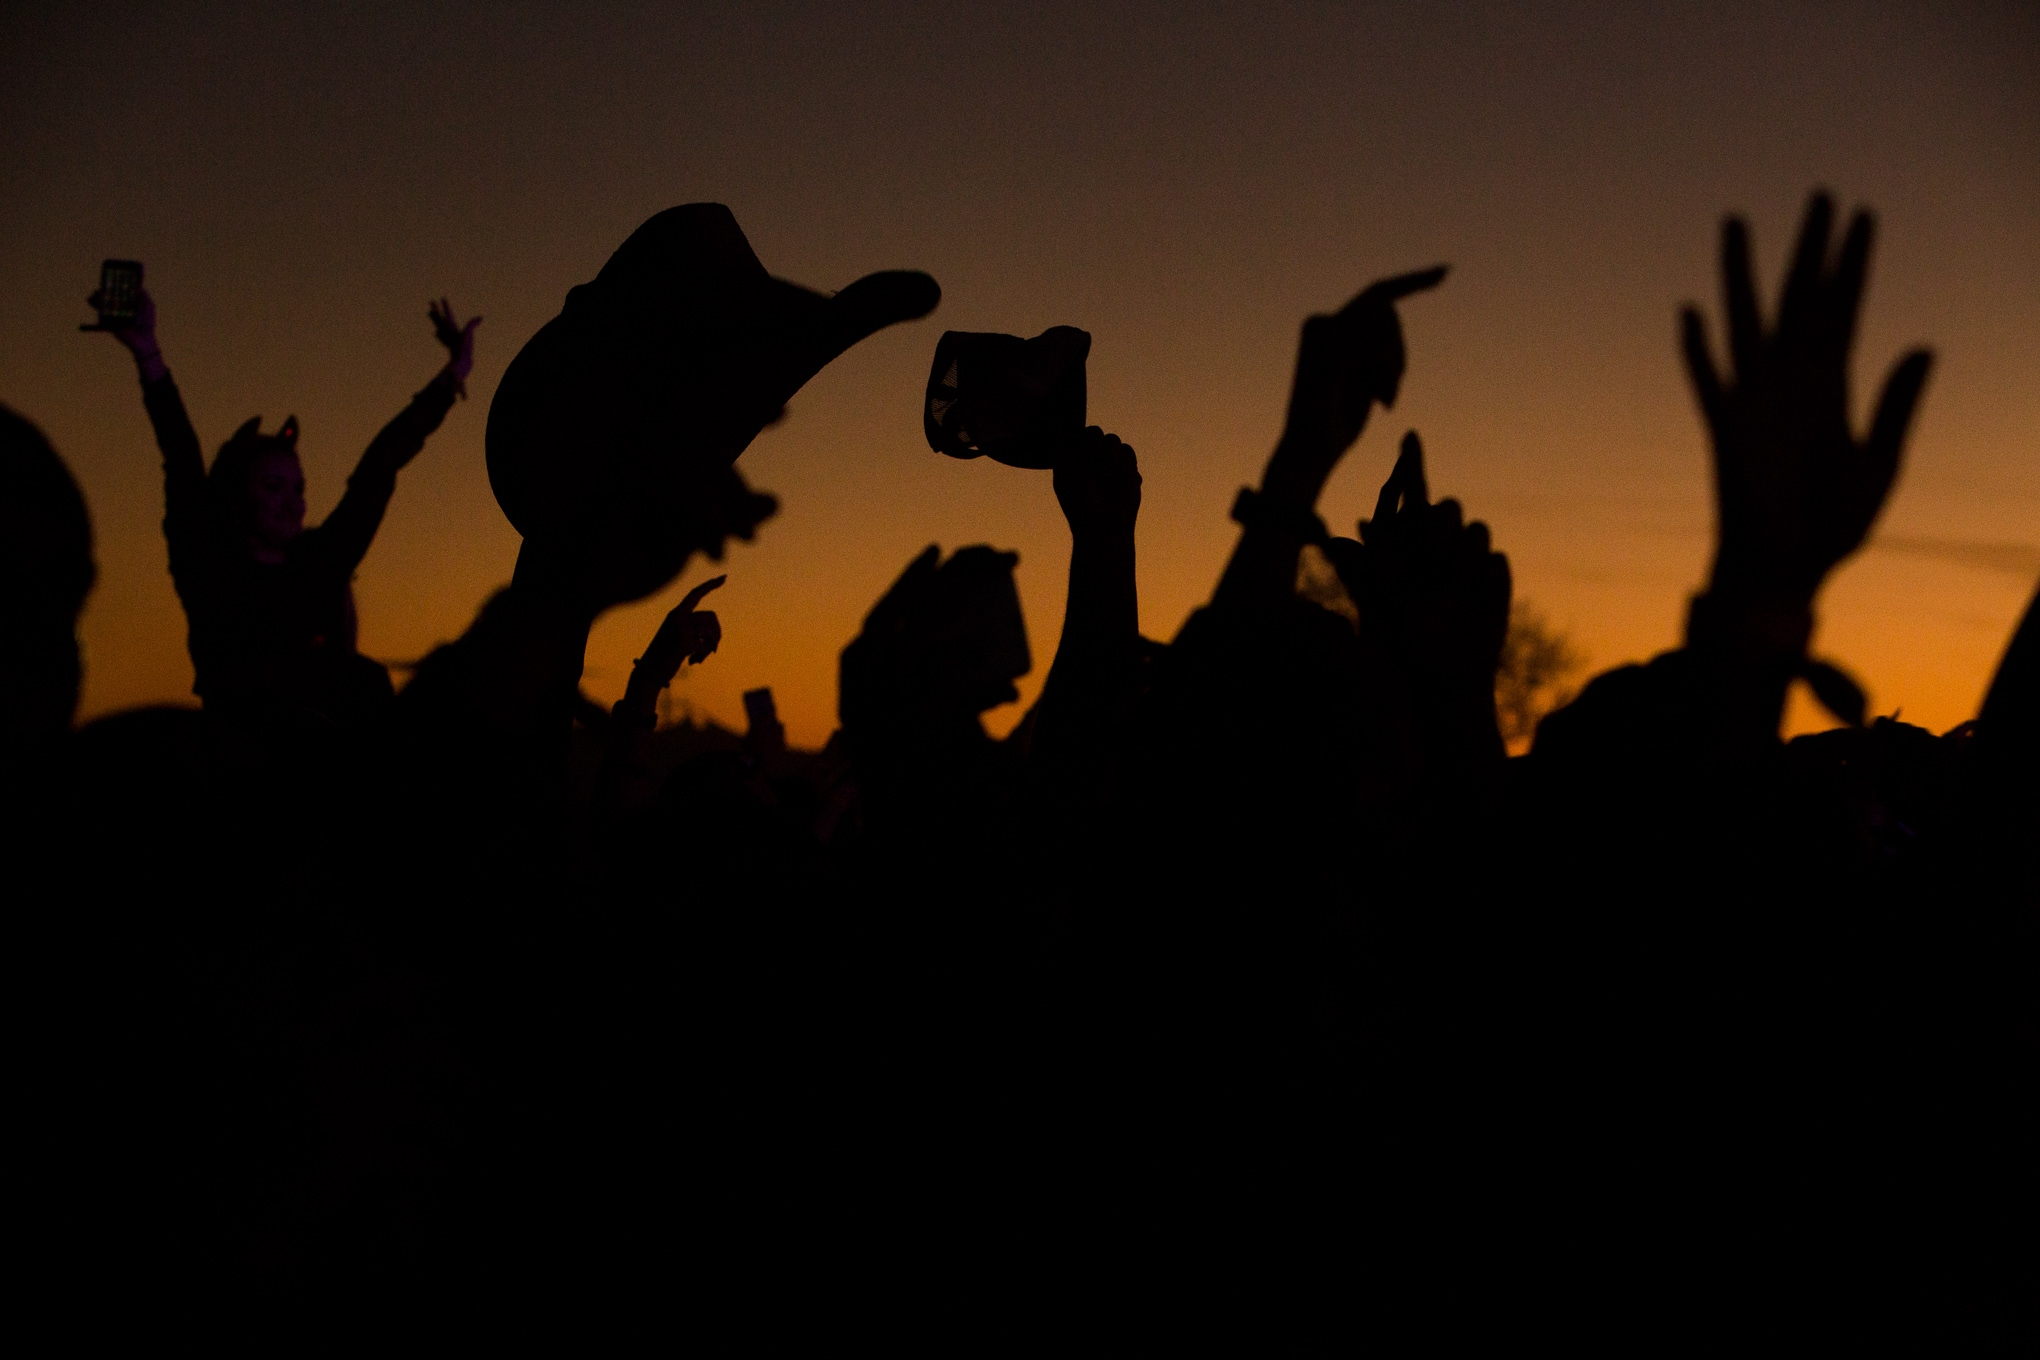 Attendees raise their hands, phones, and a cowboy hat into the air during a performance by Carnage.